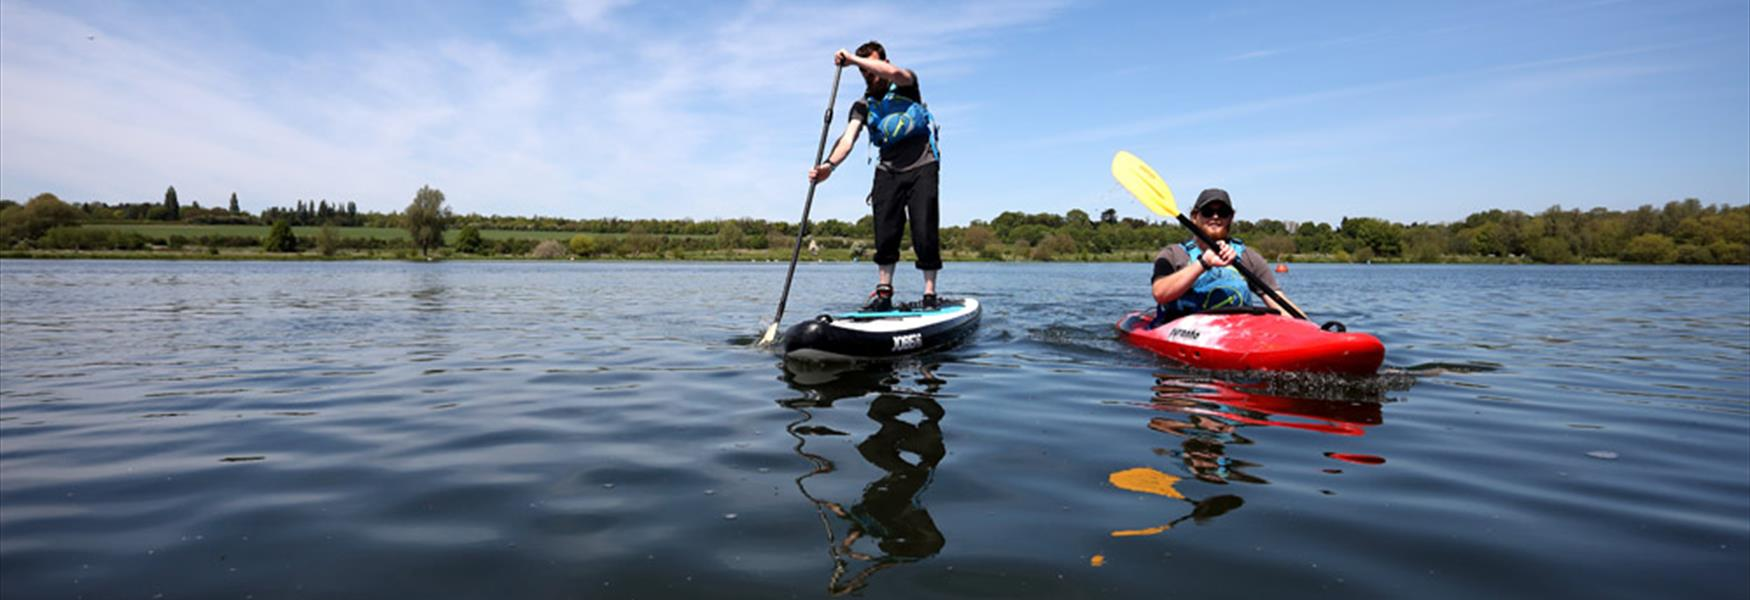 Paddle-boarding at Ferry Meadows